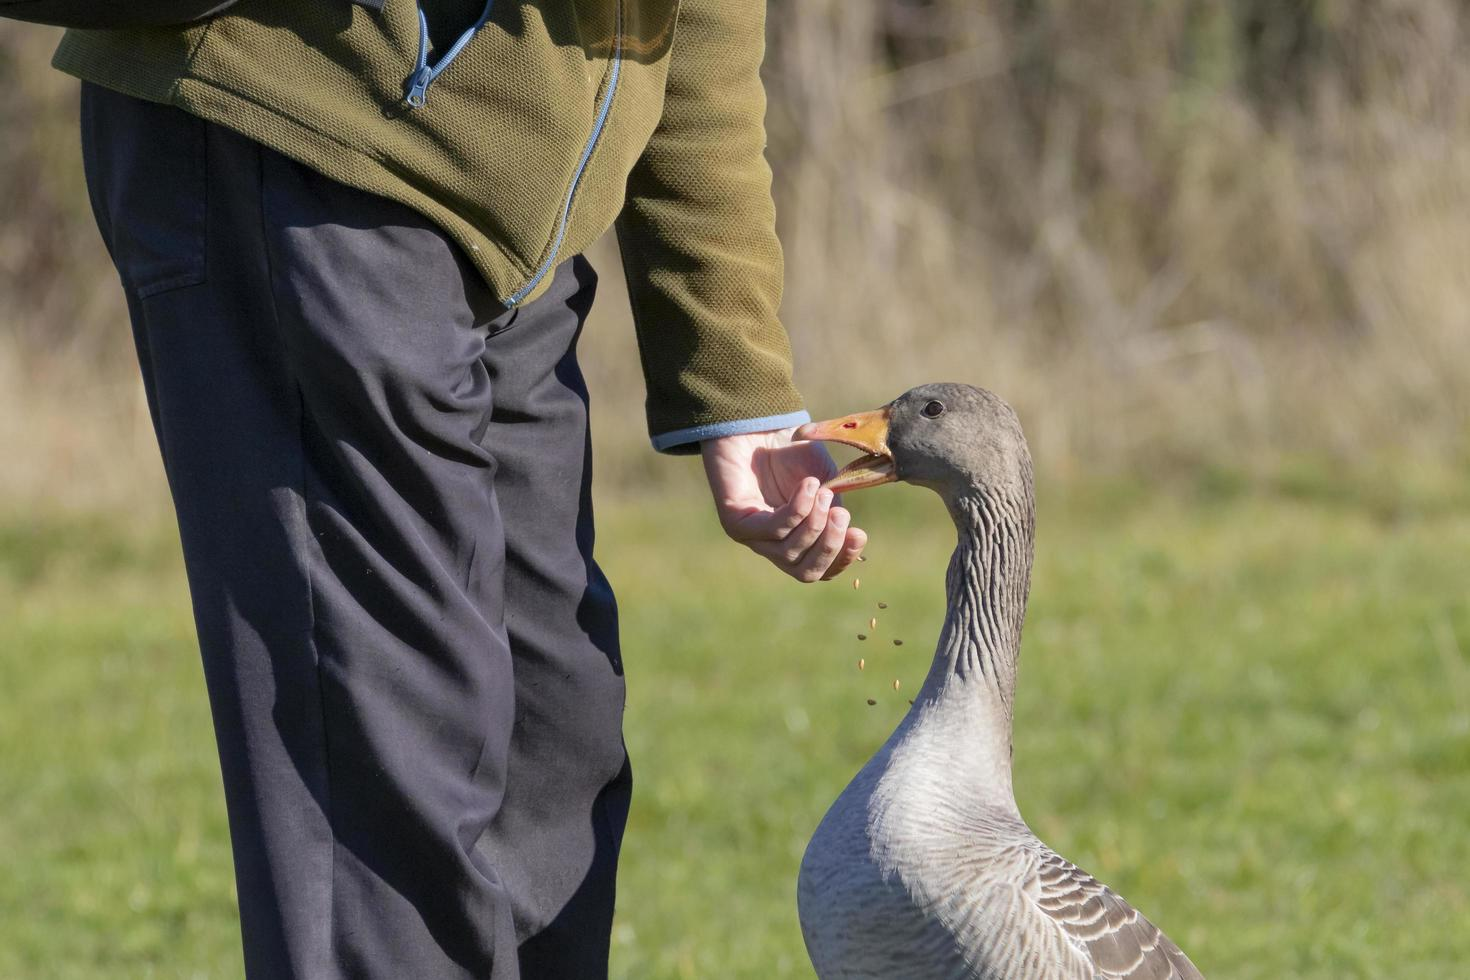 Greylag goose eating from hand photo